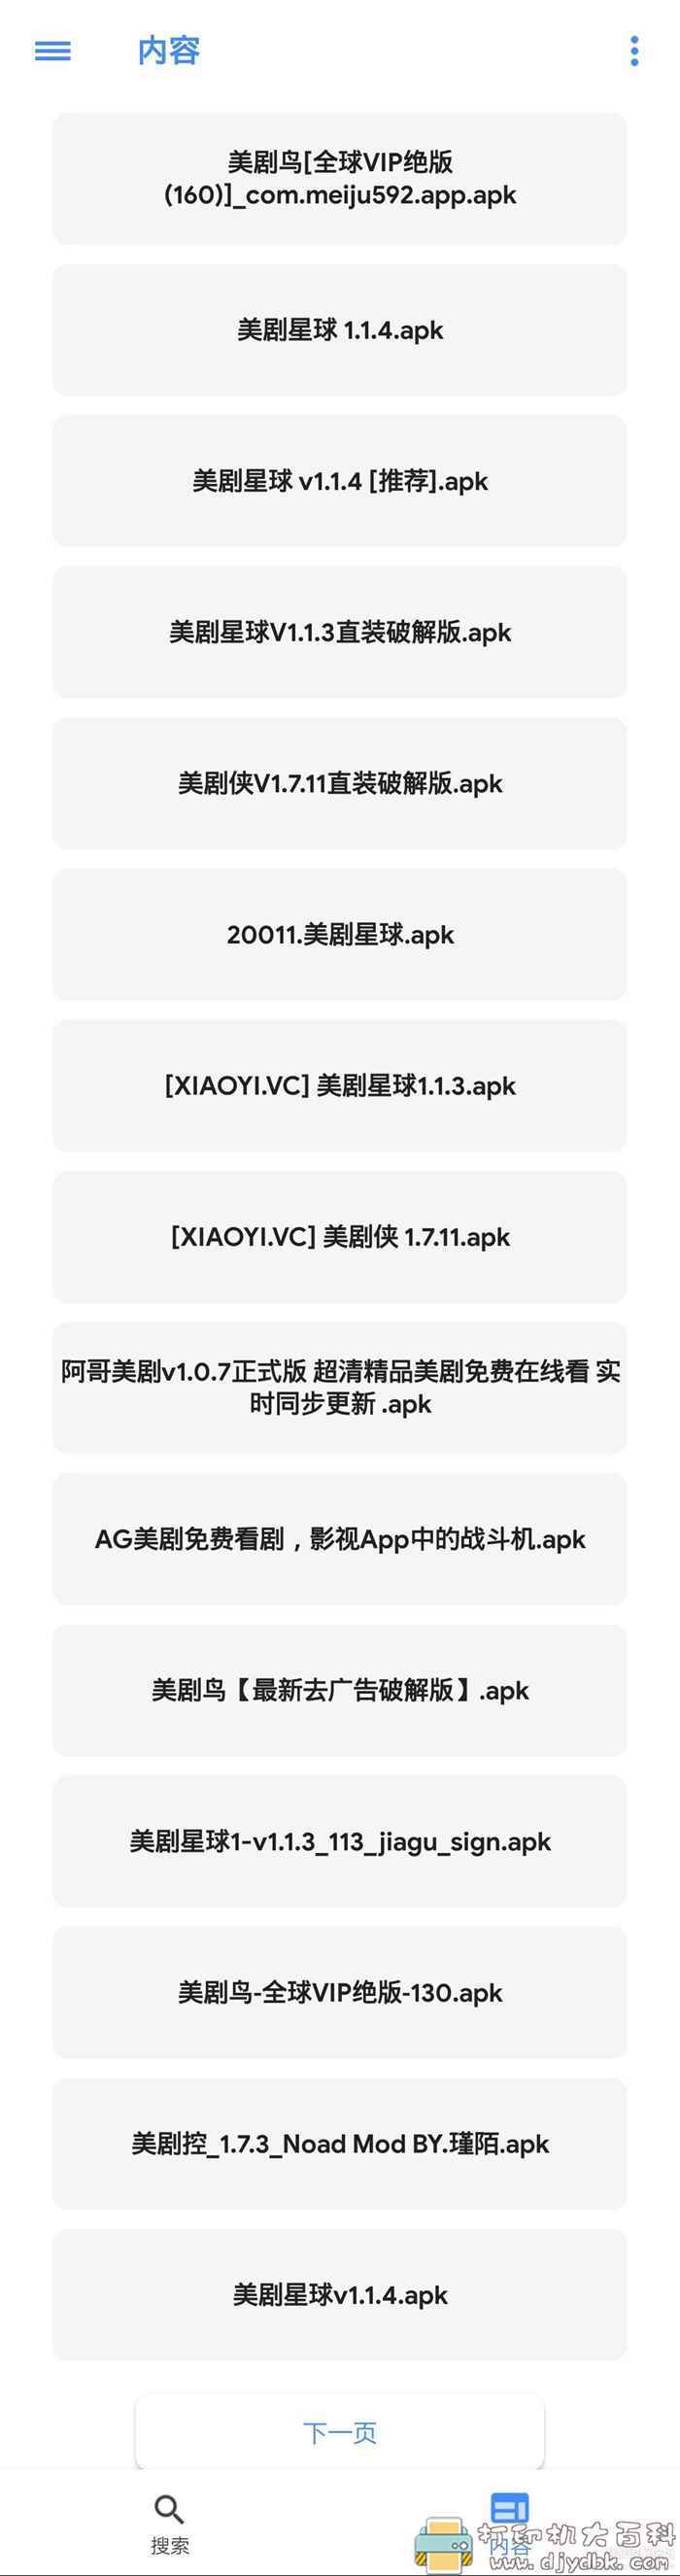 [Android]云搜索,安卓软件商城图片 No.6